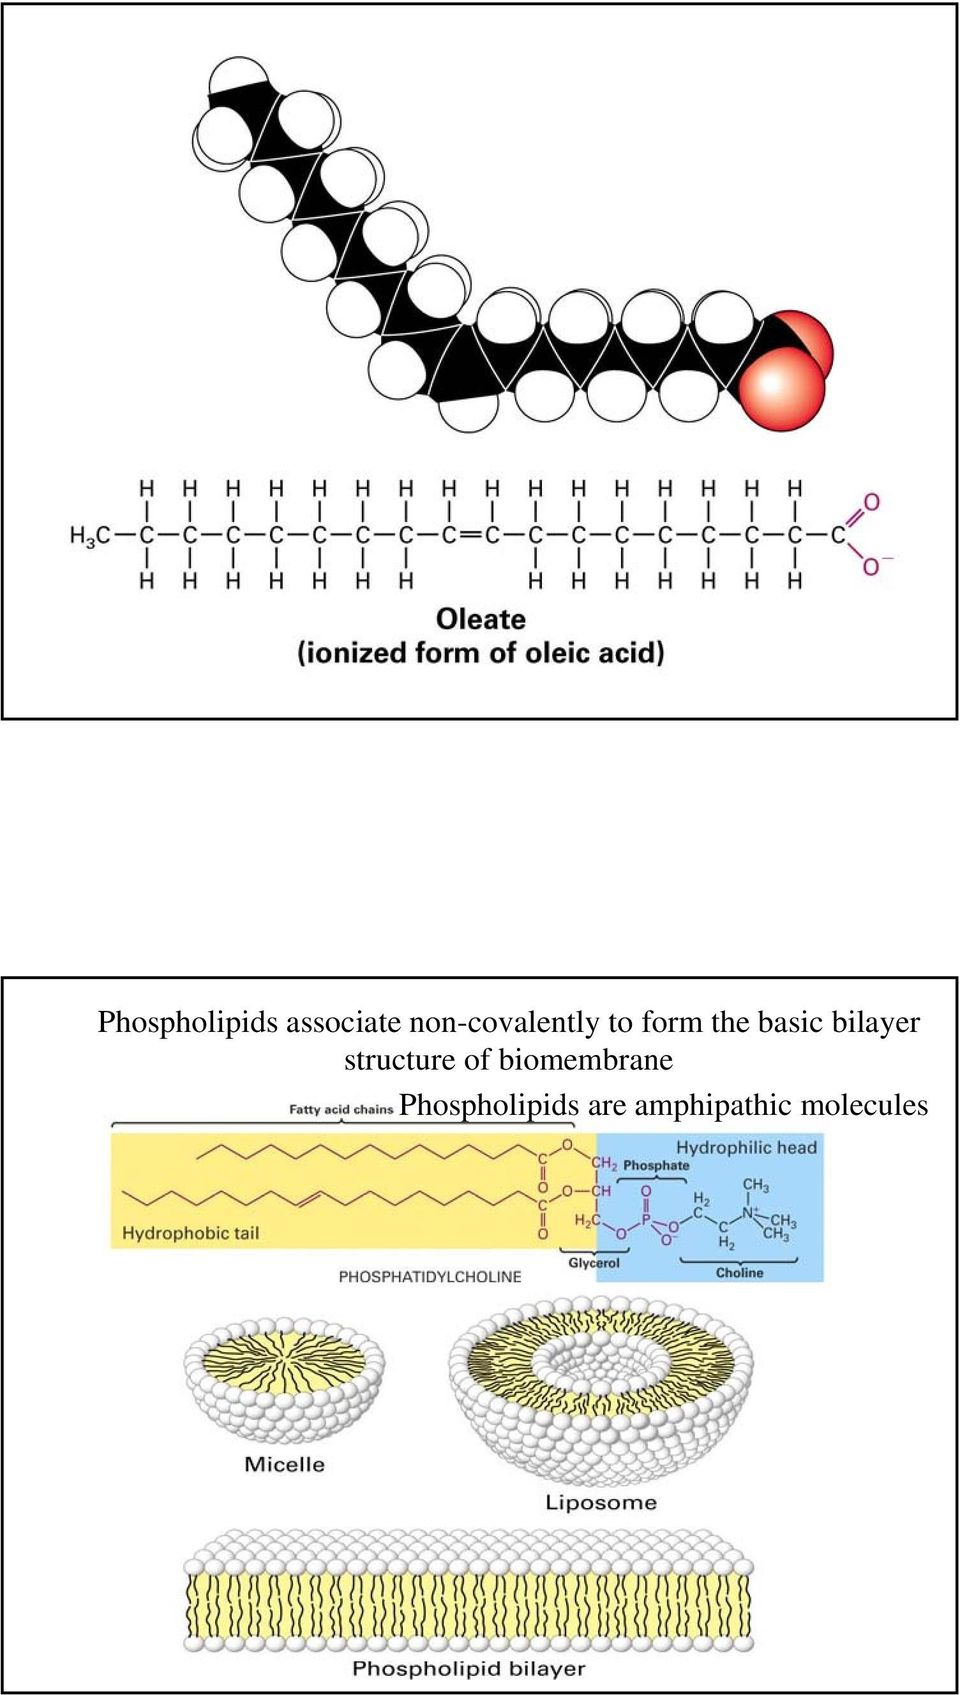 bilayer structure of biomembrane